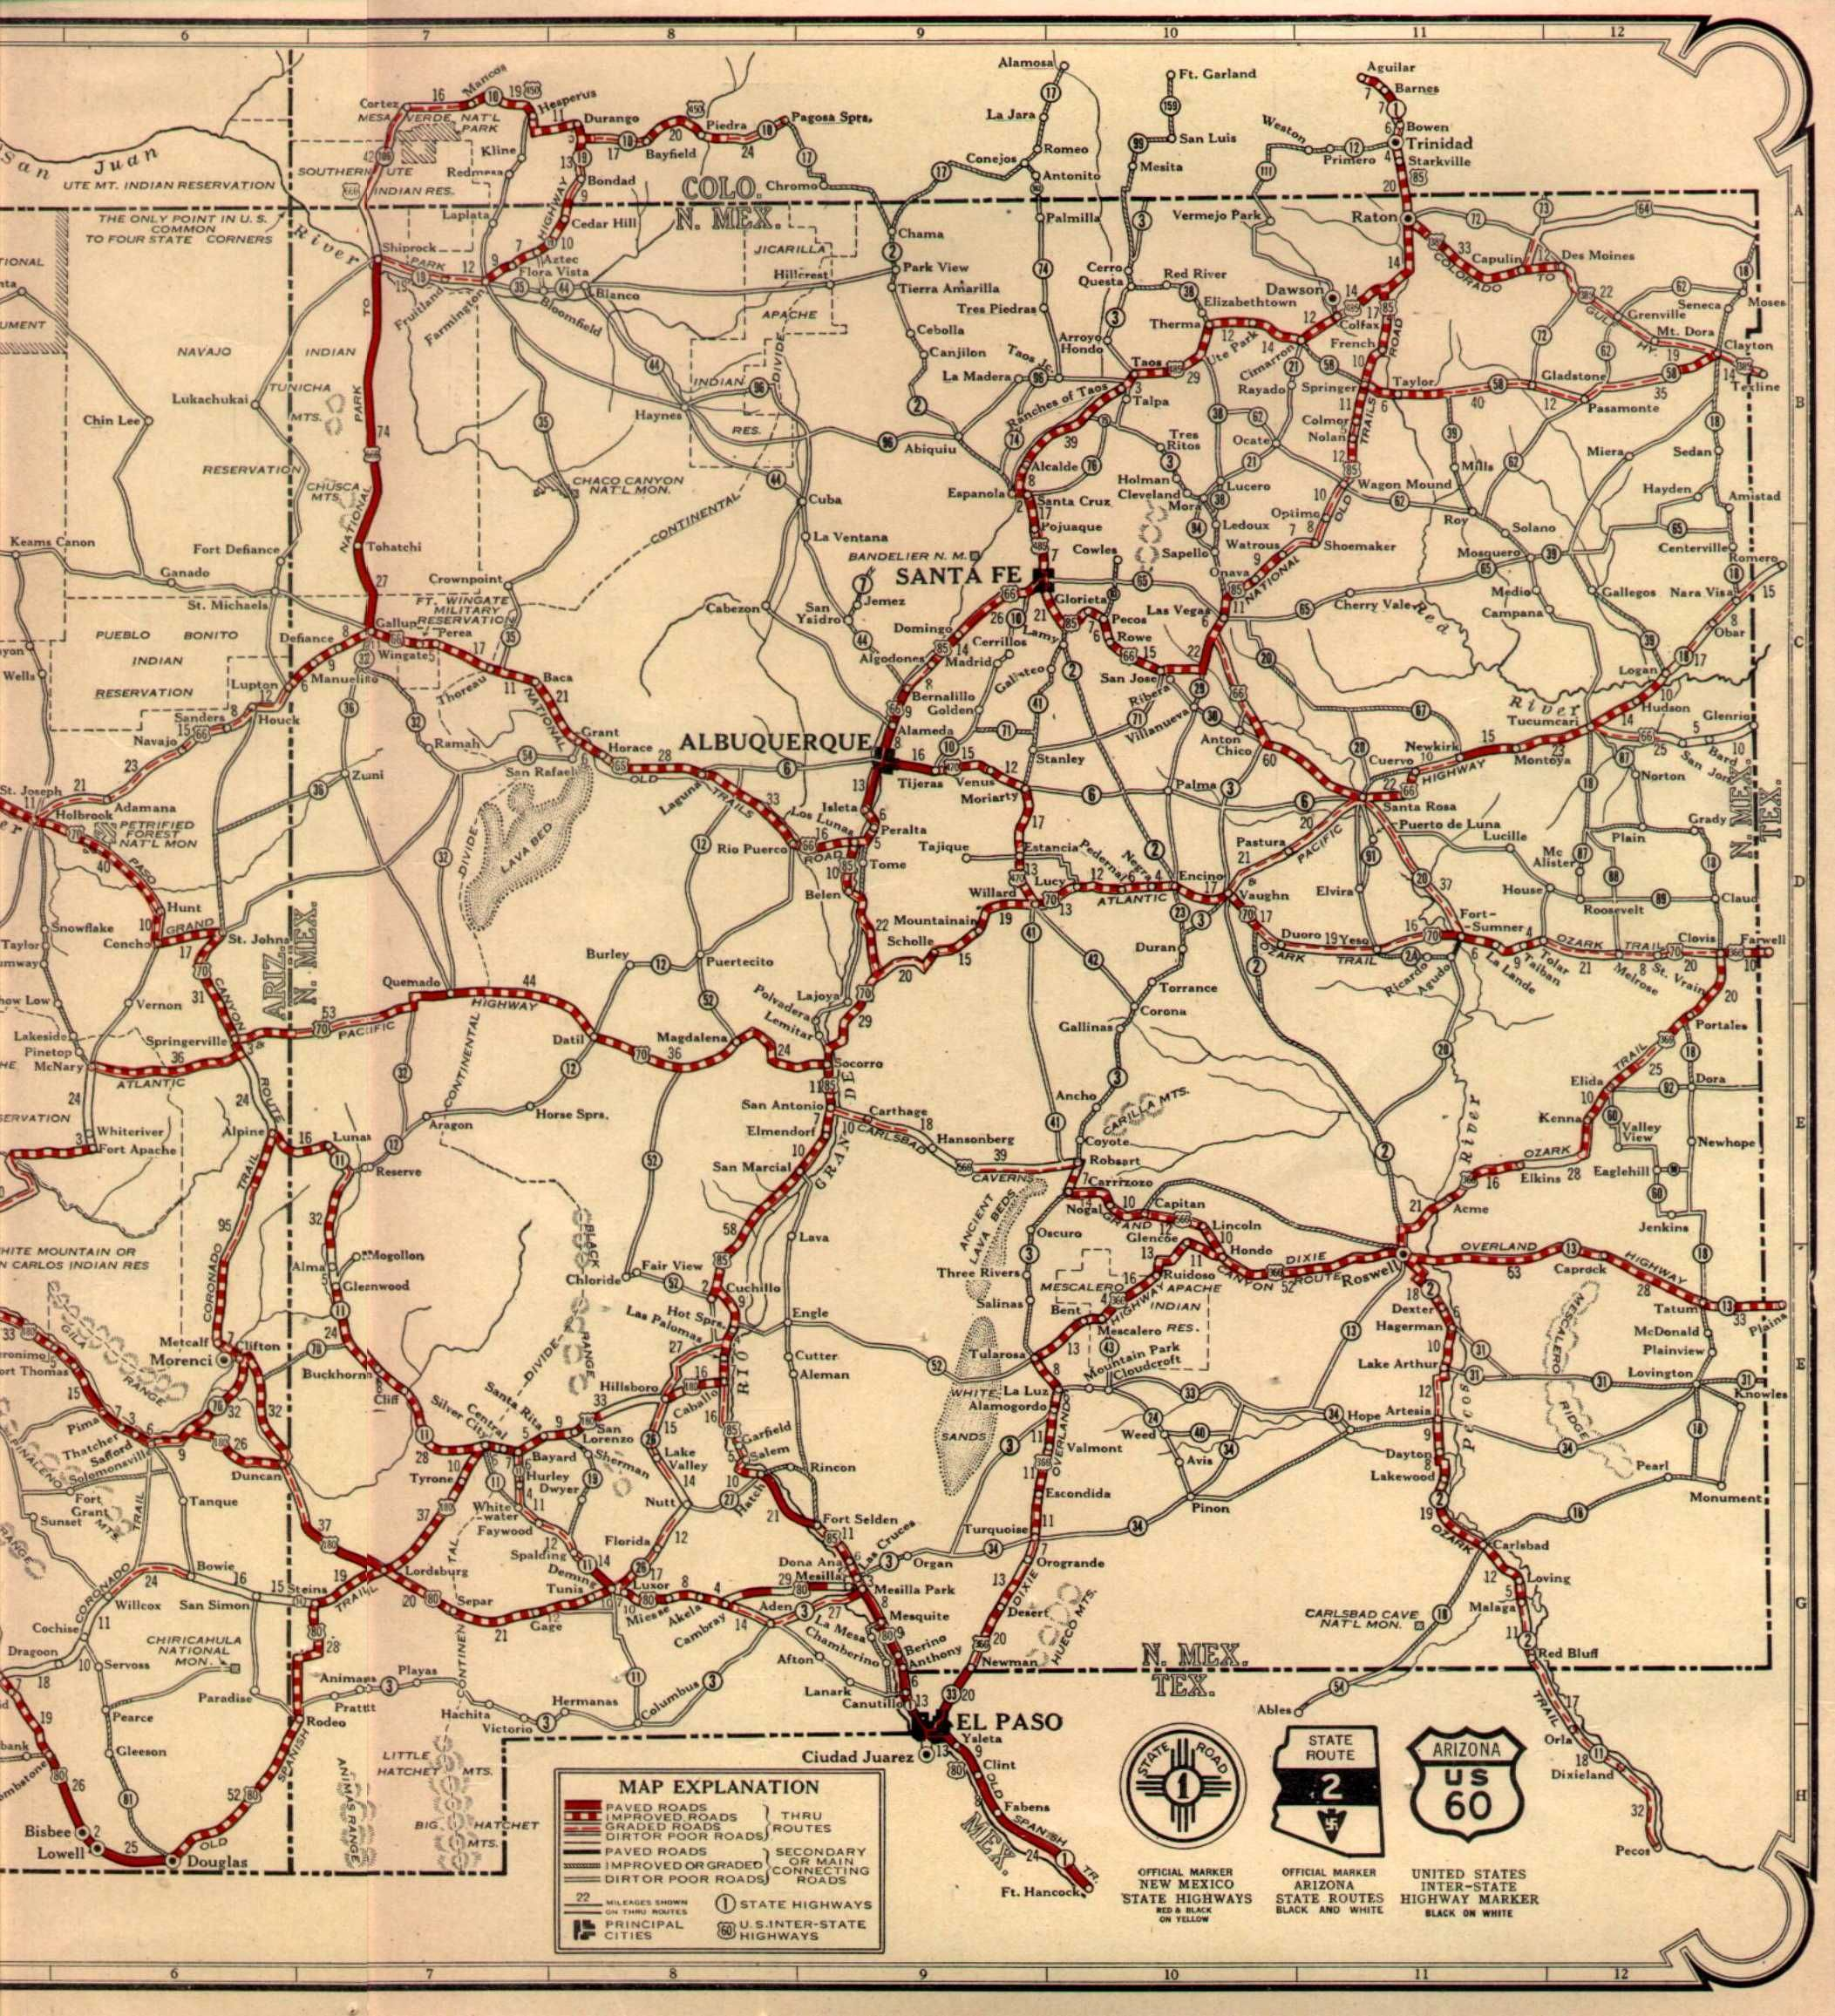 Route On AZNM Map Maps Pinterest Route Road - Road map of nm